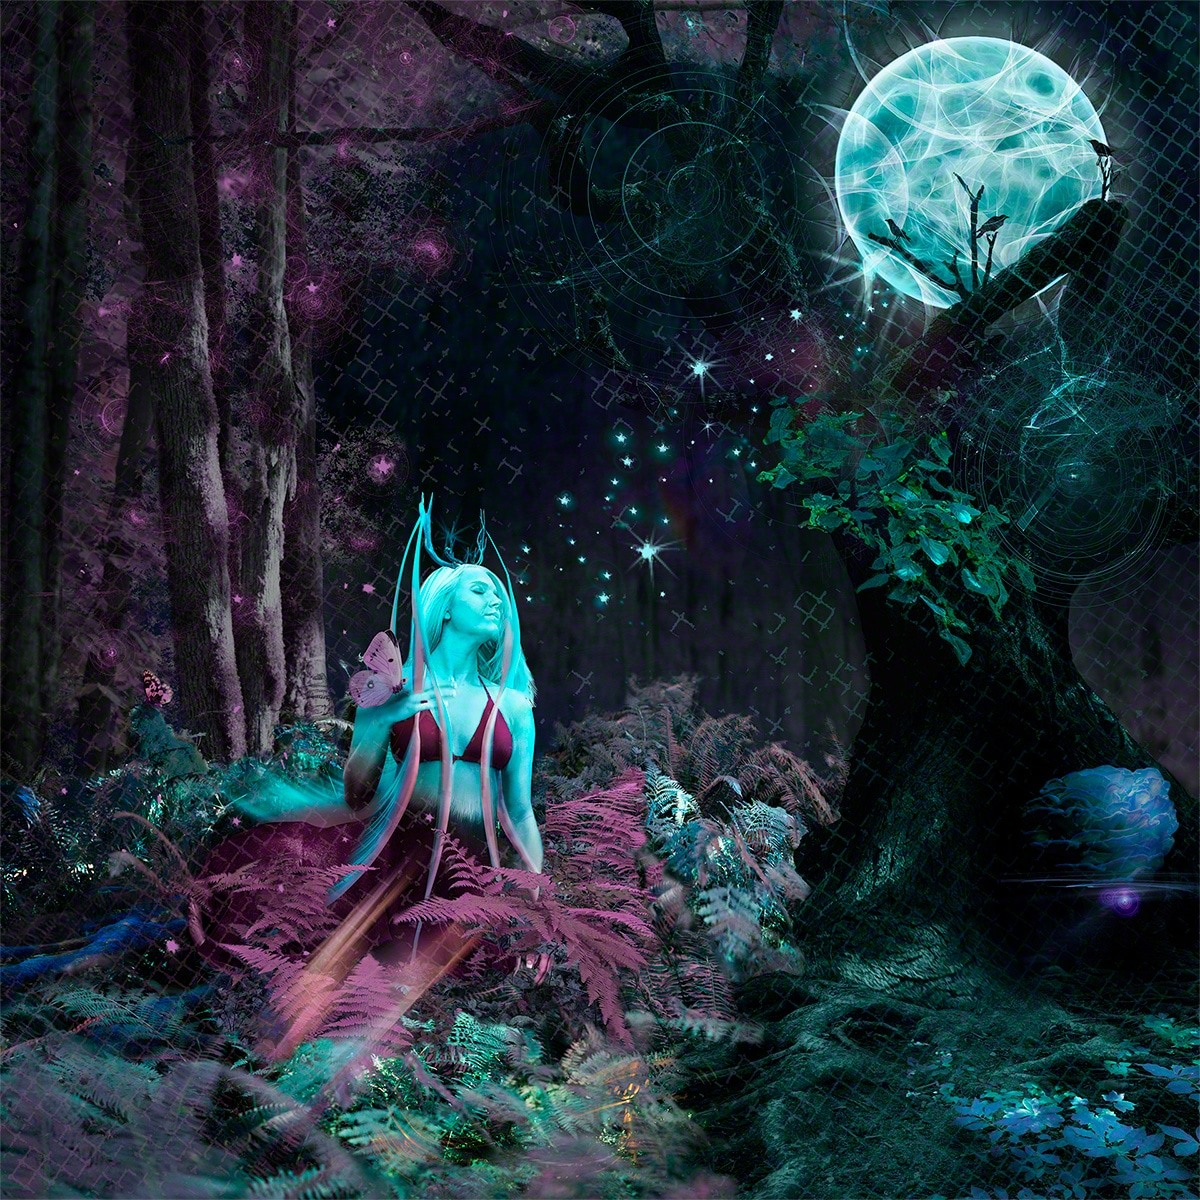 moon, photoshop, fantasy, deer